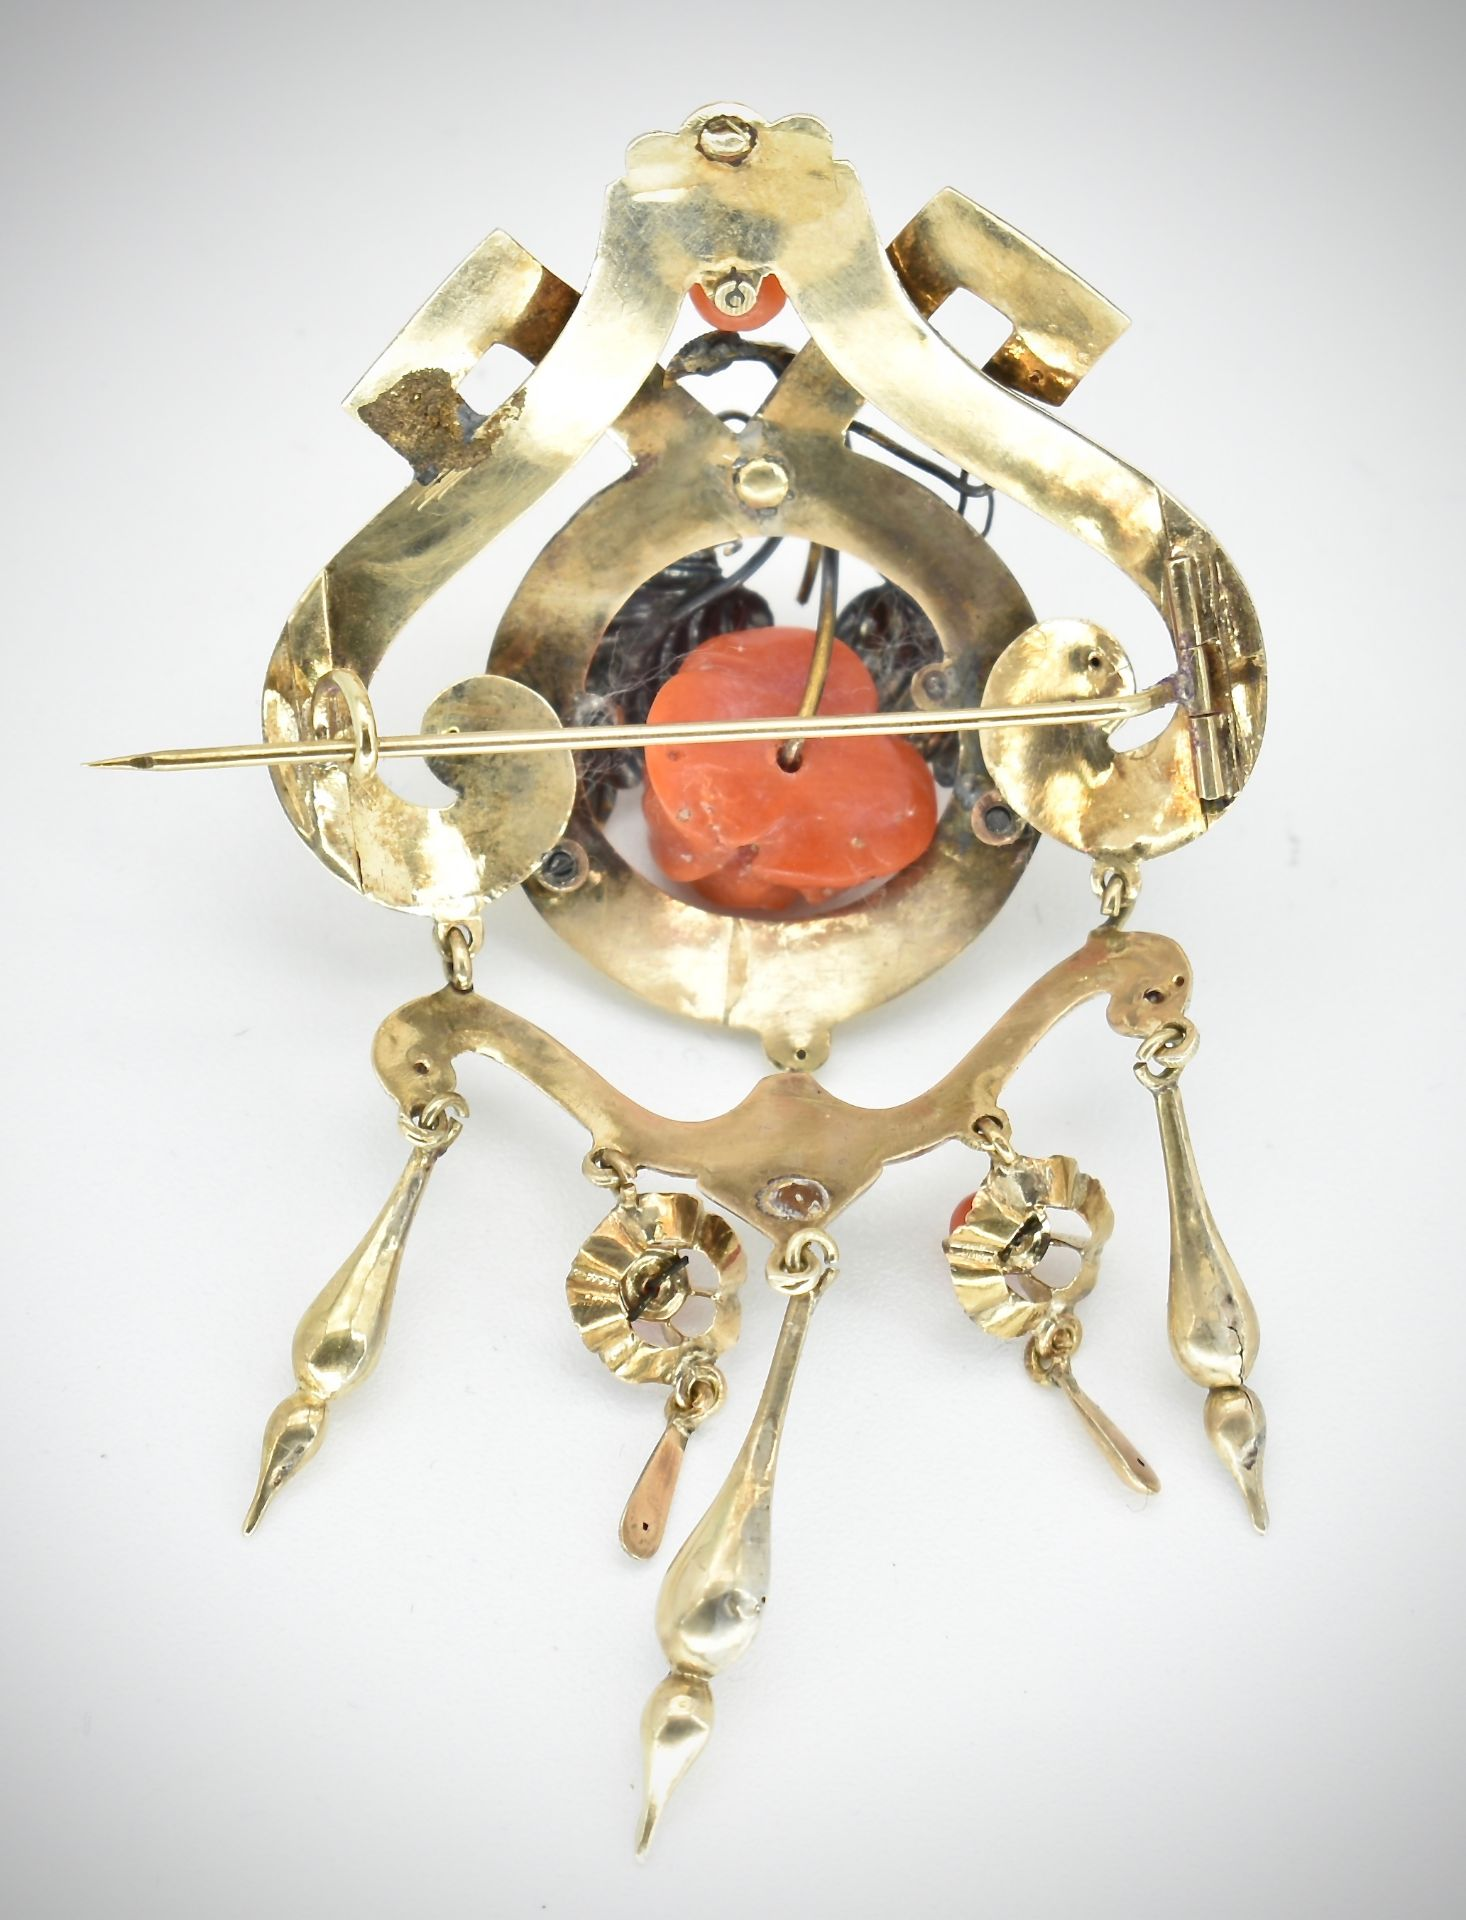 19th Century Victorian Gold & Coral Earring & Brooch Parure - Image 6 of 7